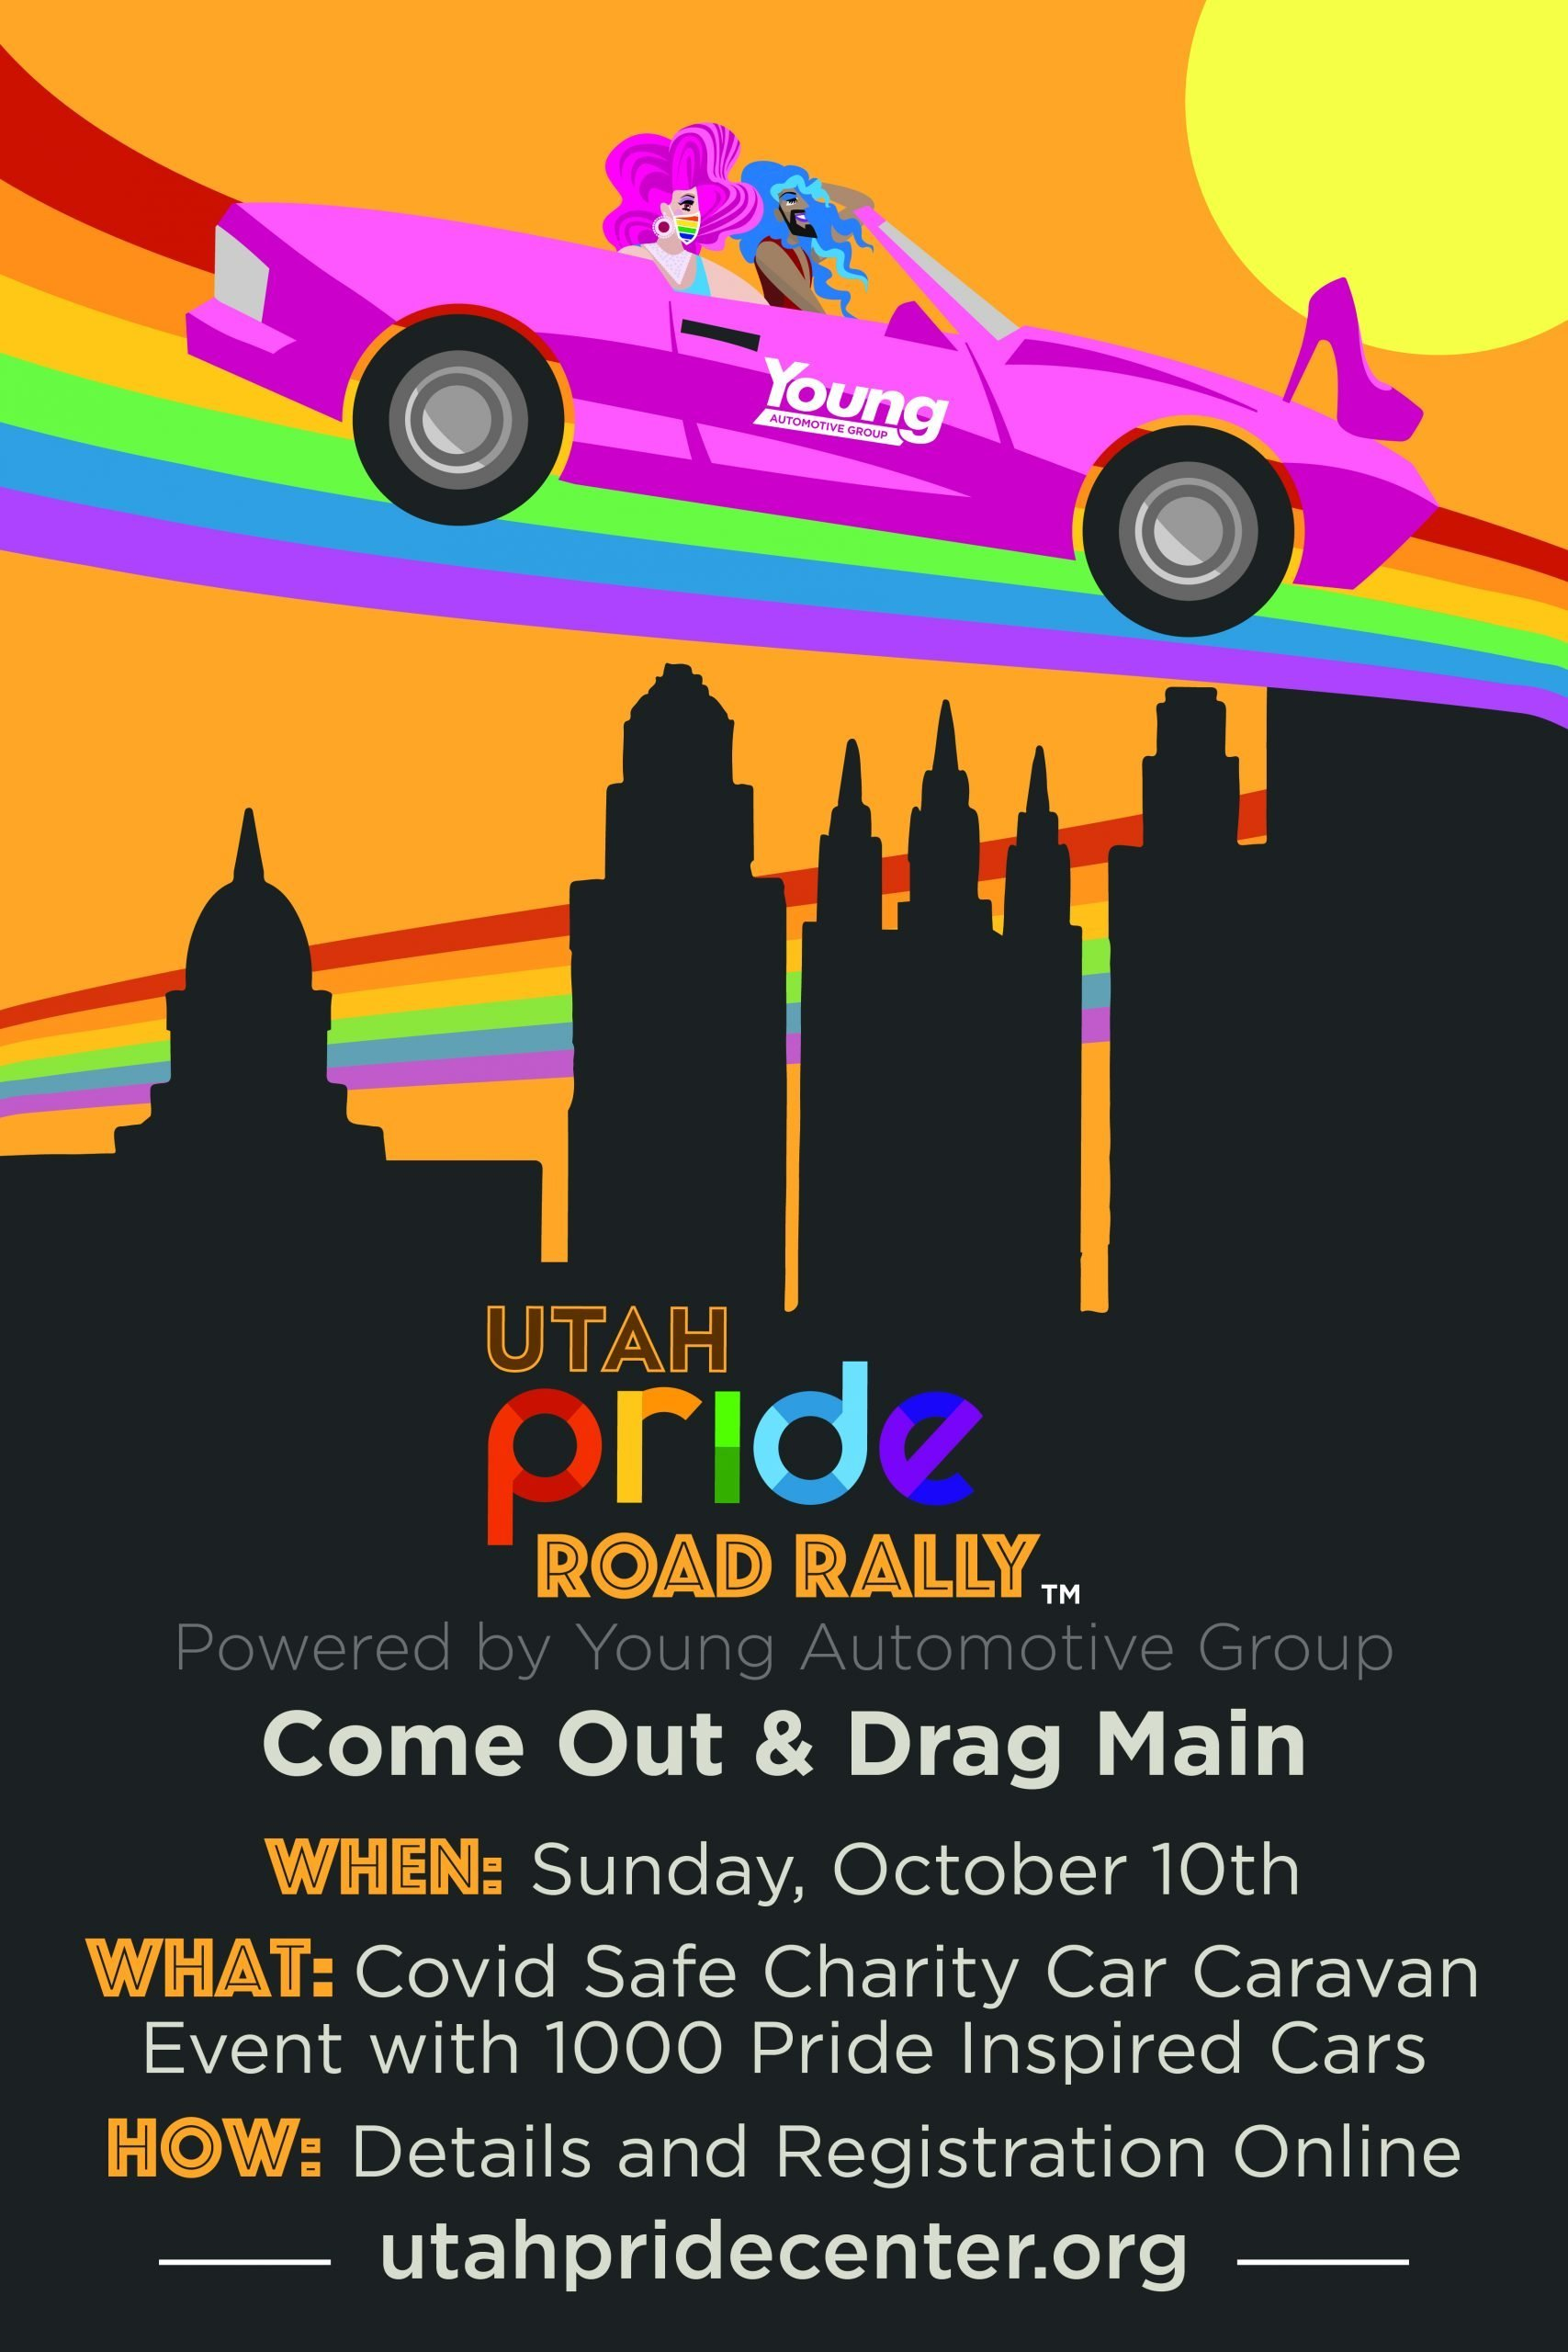 Poster text: Utah Pride Road Rally. Come Out & Drag Main. Sunday, October 10, 2021, Image link goes to more information.